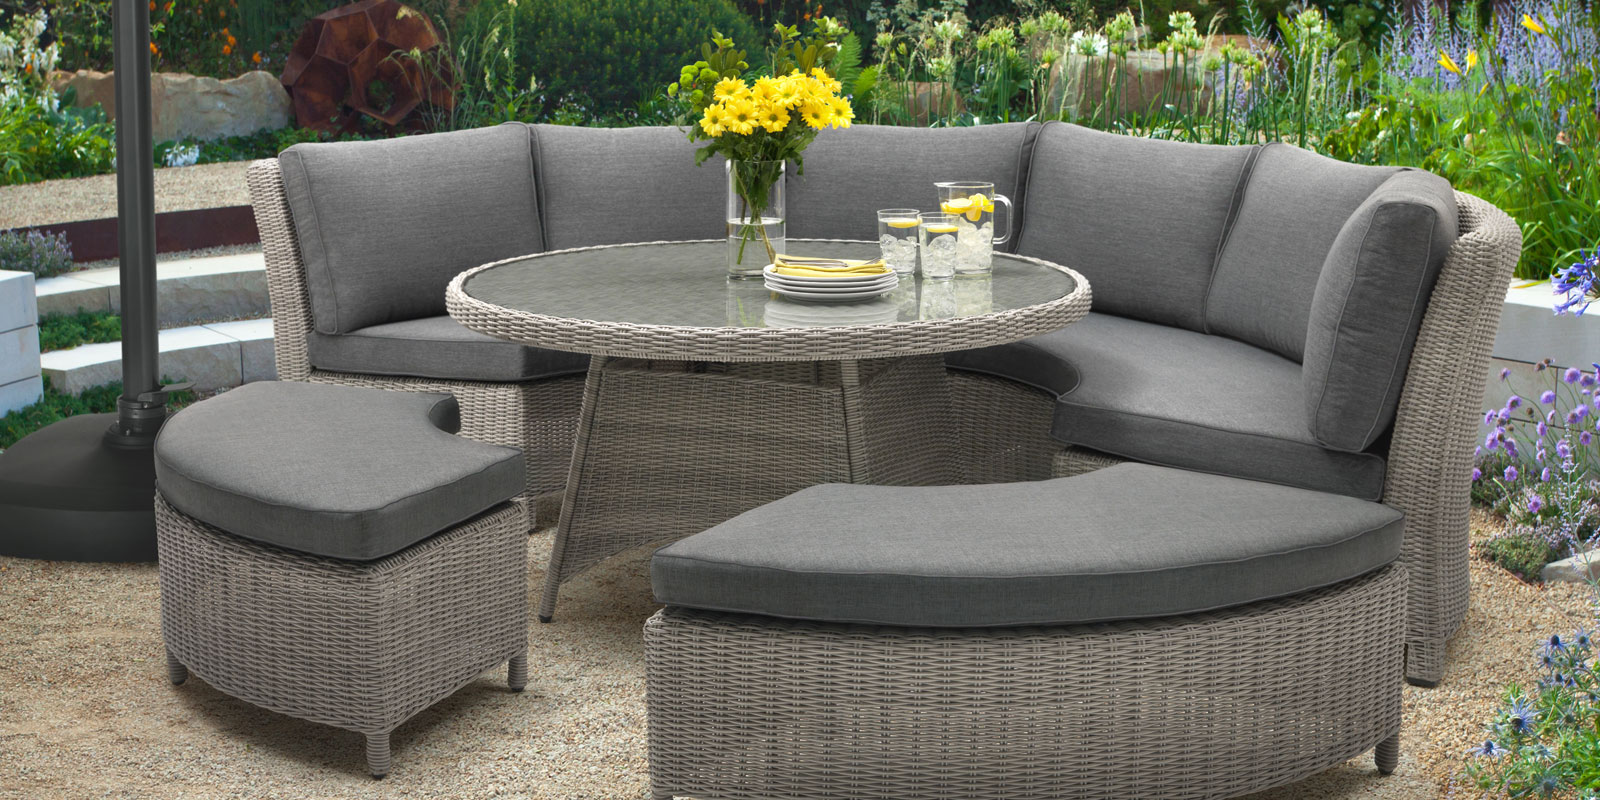 Luxurious garden furniture from Kettler